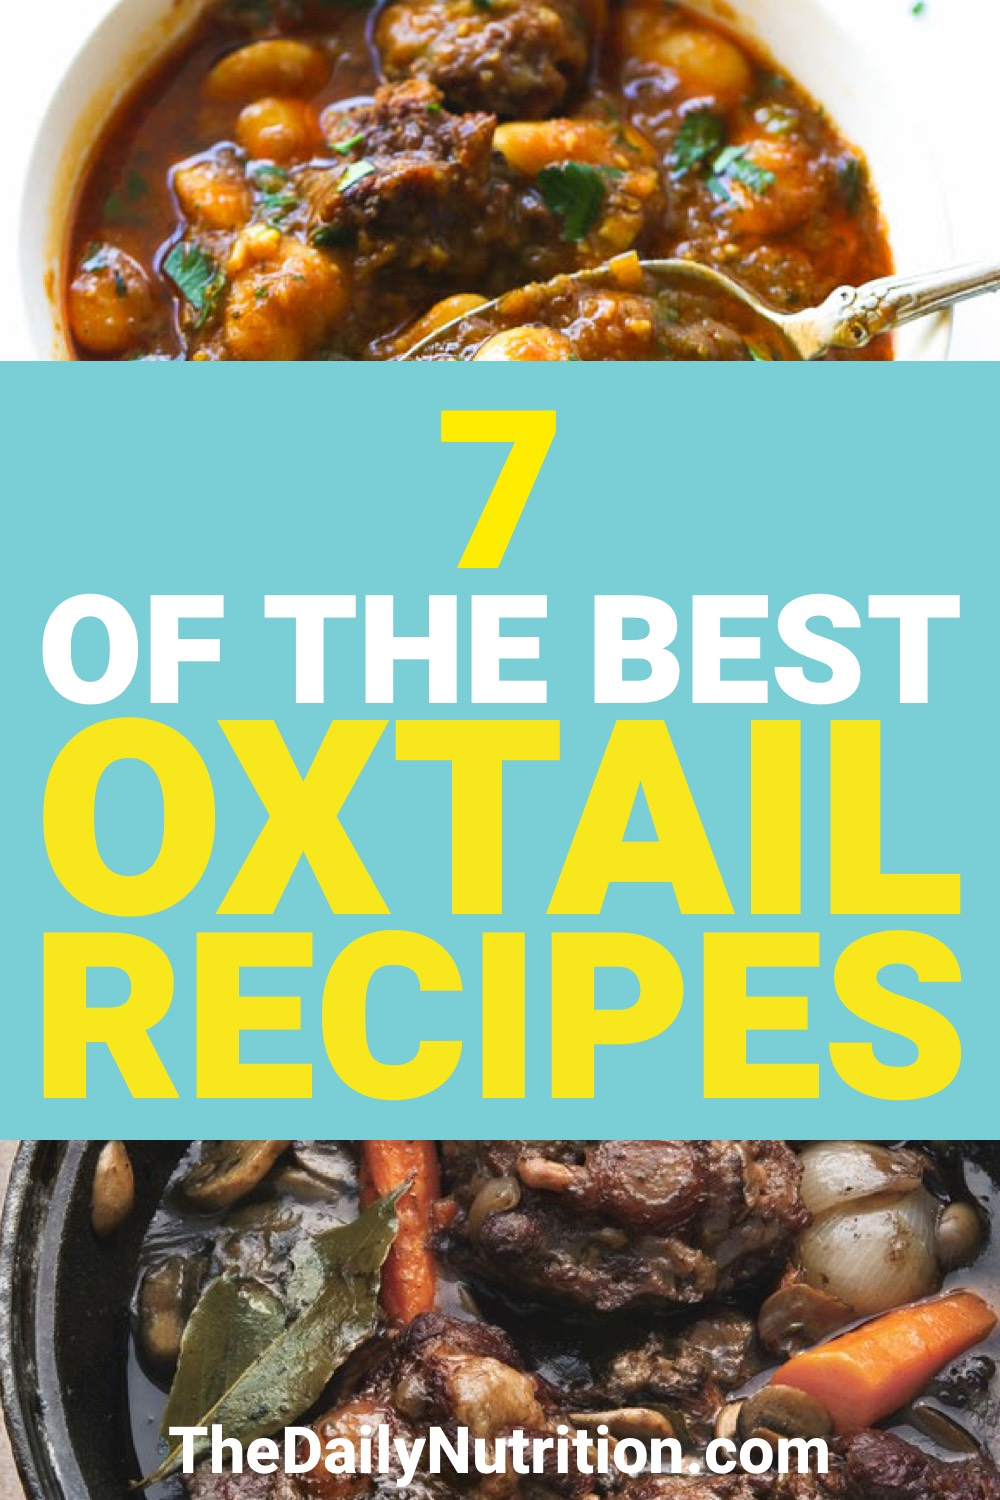 Oxtail is a food that not many have tried. Here are 7 oxtail recipes that will let you know how good oxtail actually is.